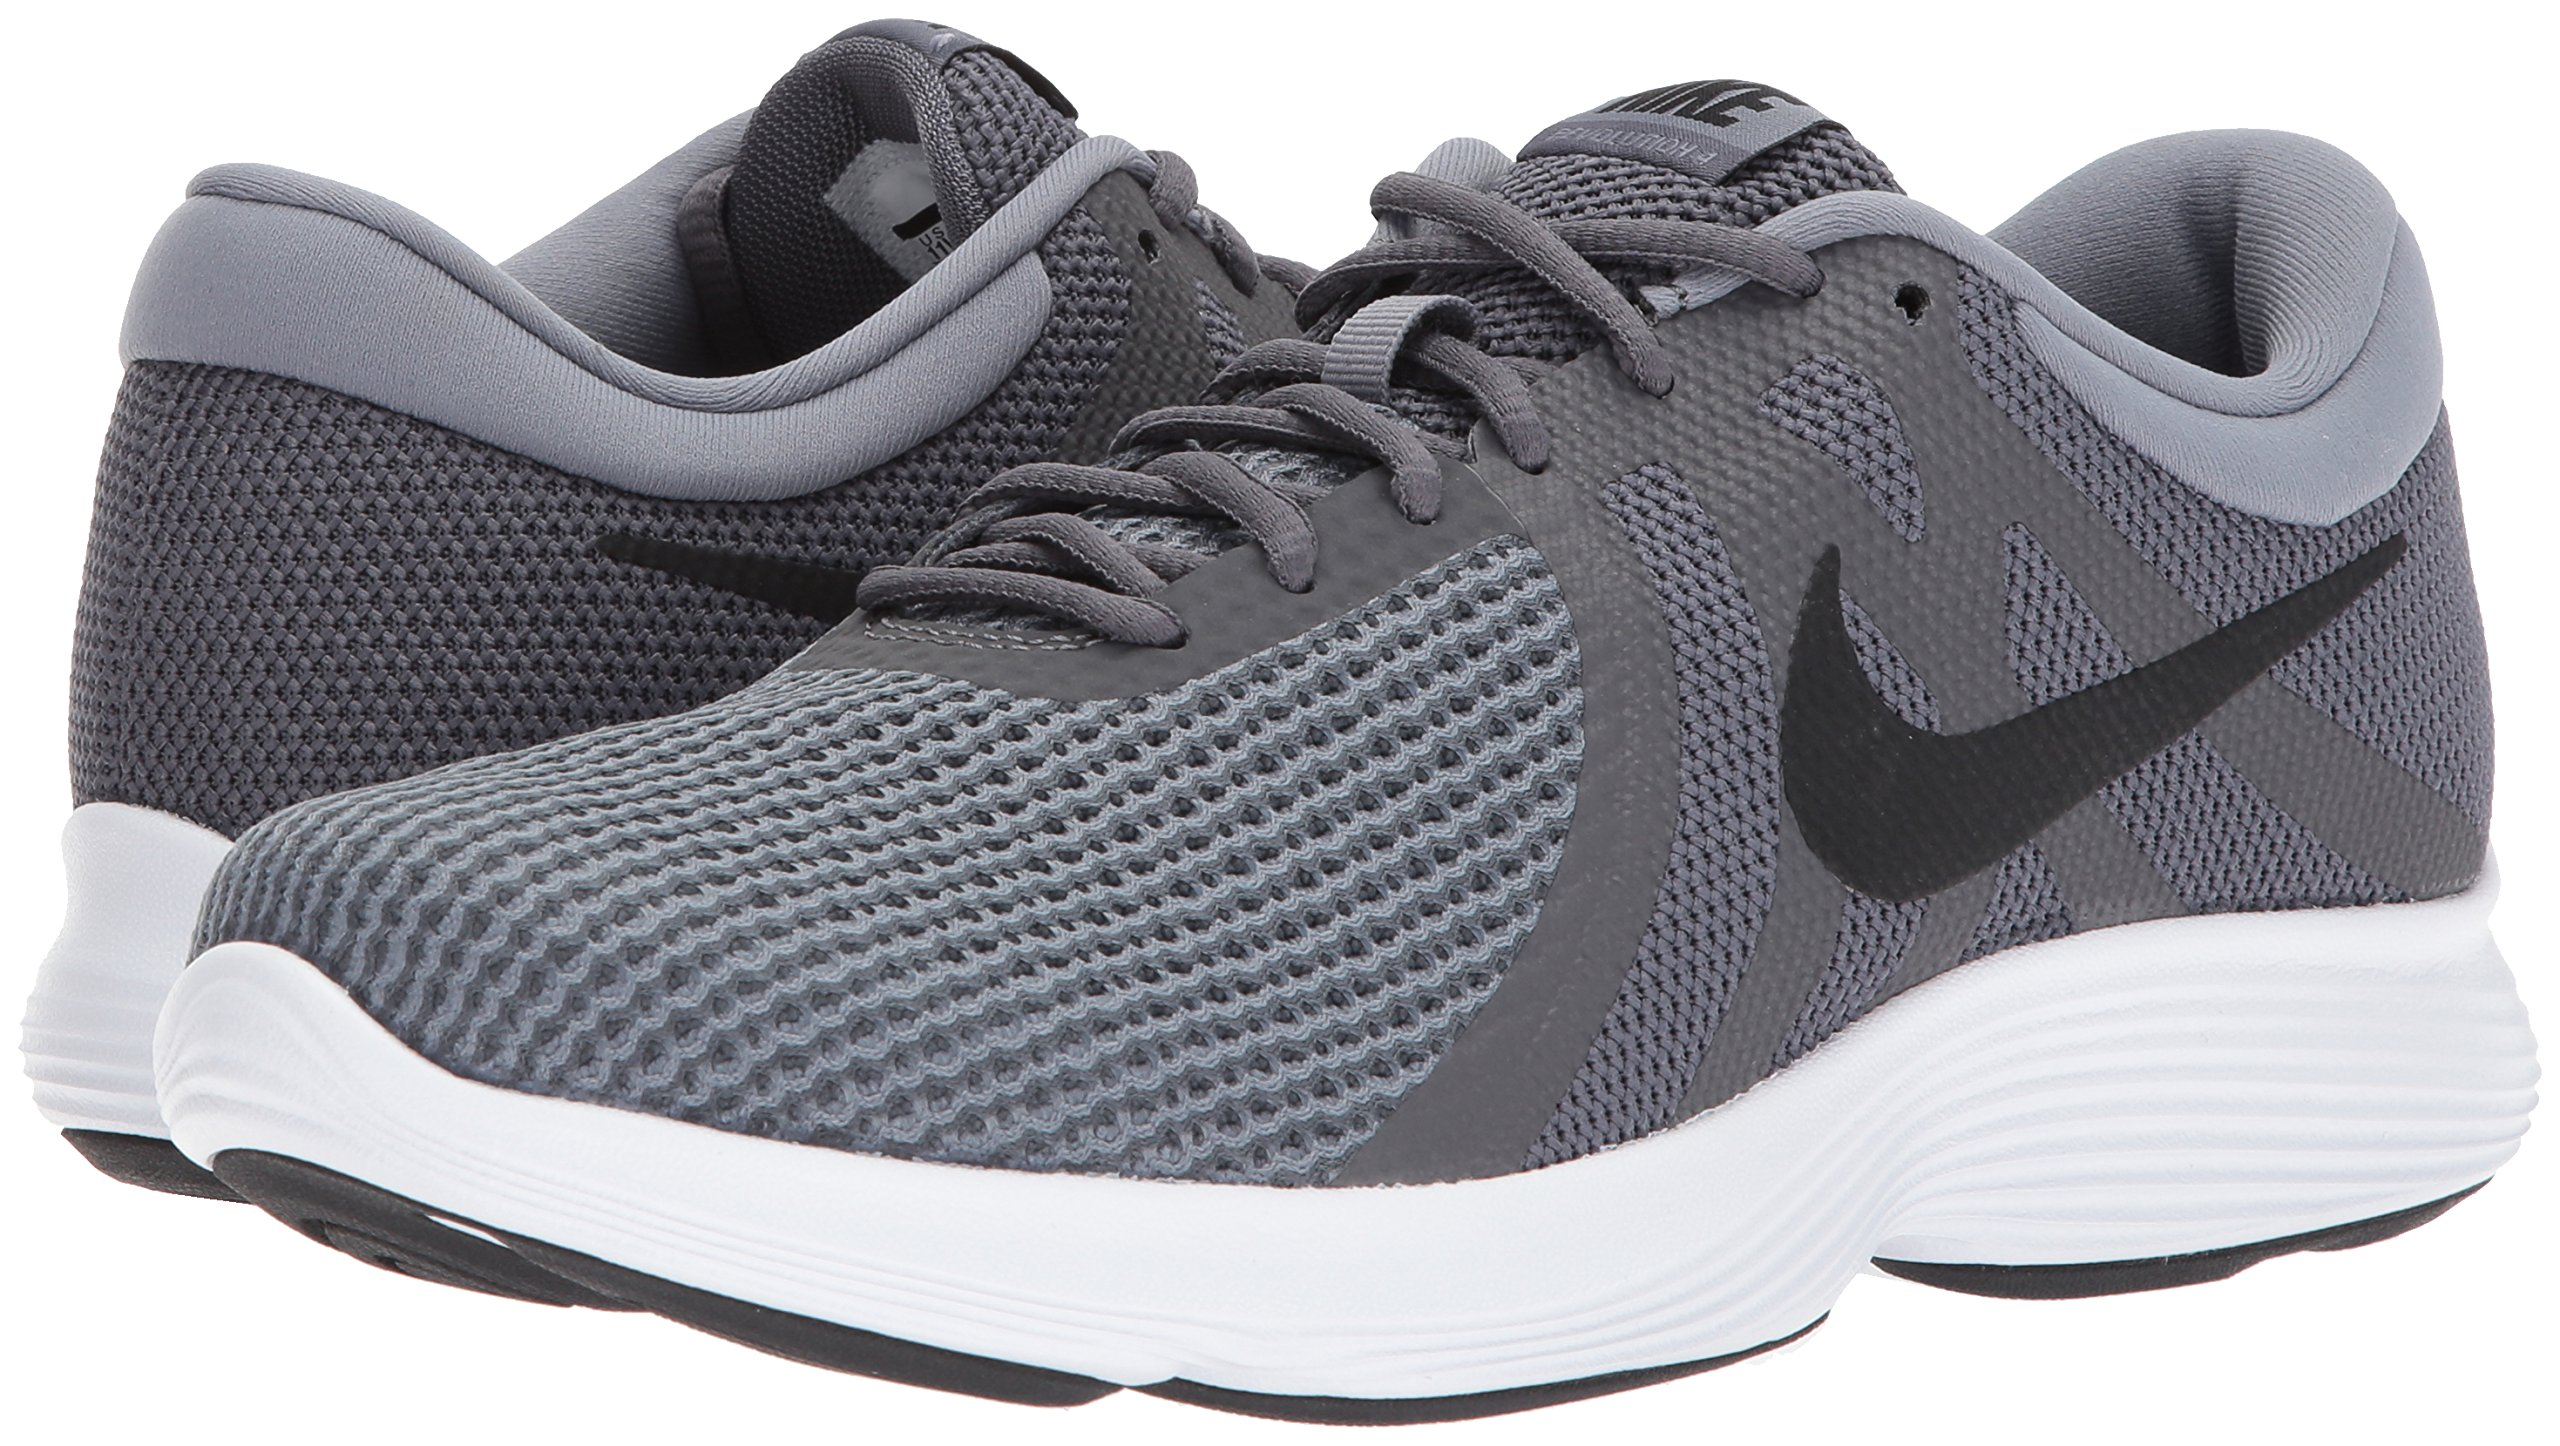 Nike Men's Revolution 4 Running Shoe, Dark Black-Cool Grey/White, 6 Regular US by Nike (Image #5)